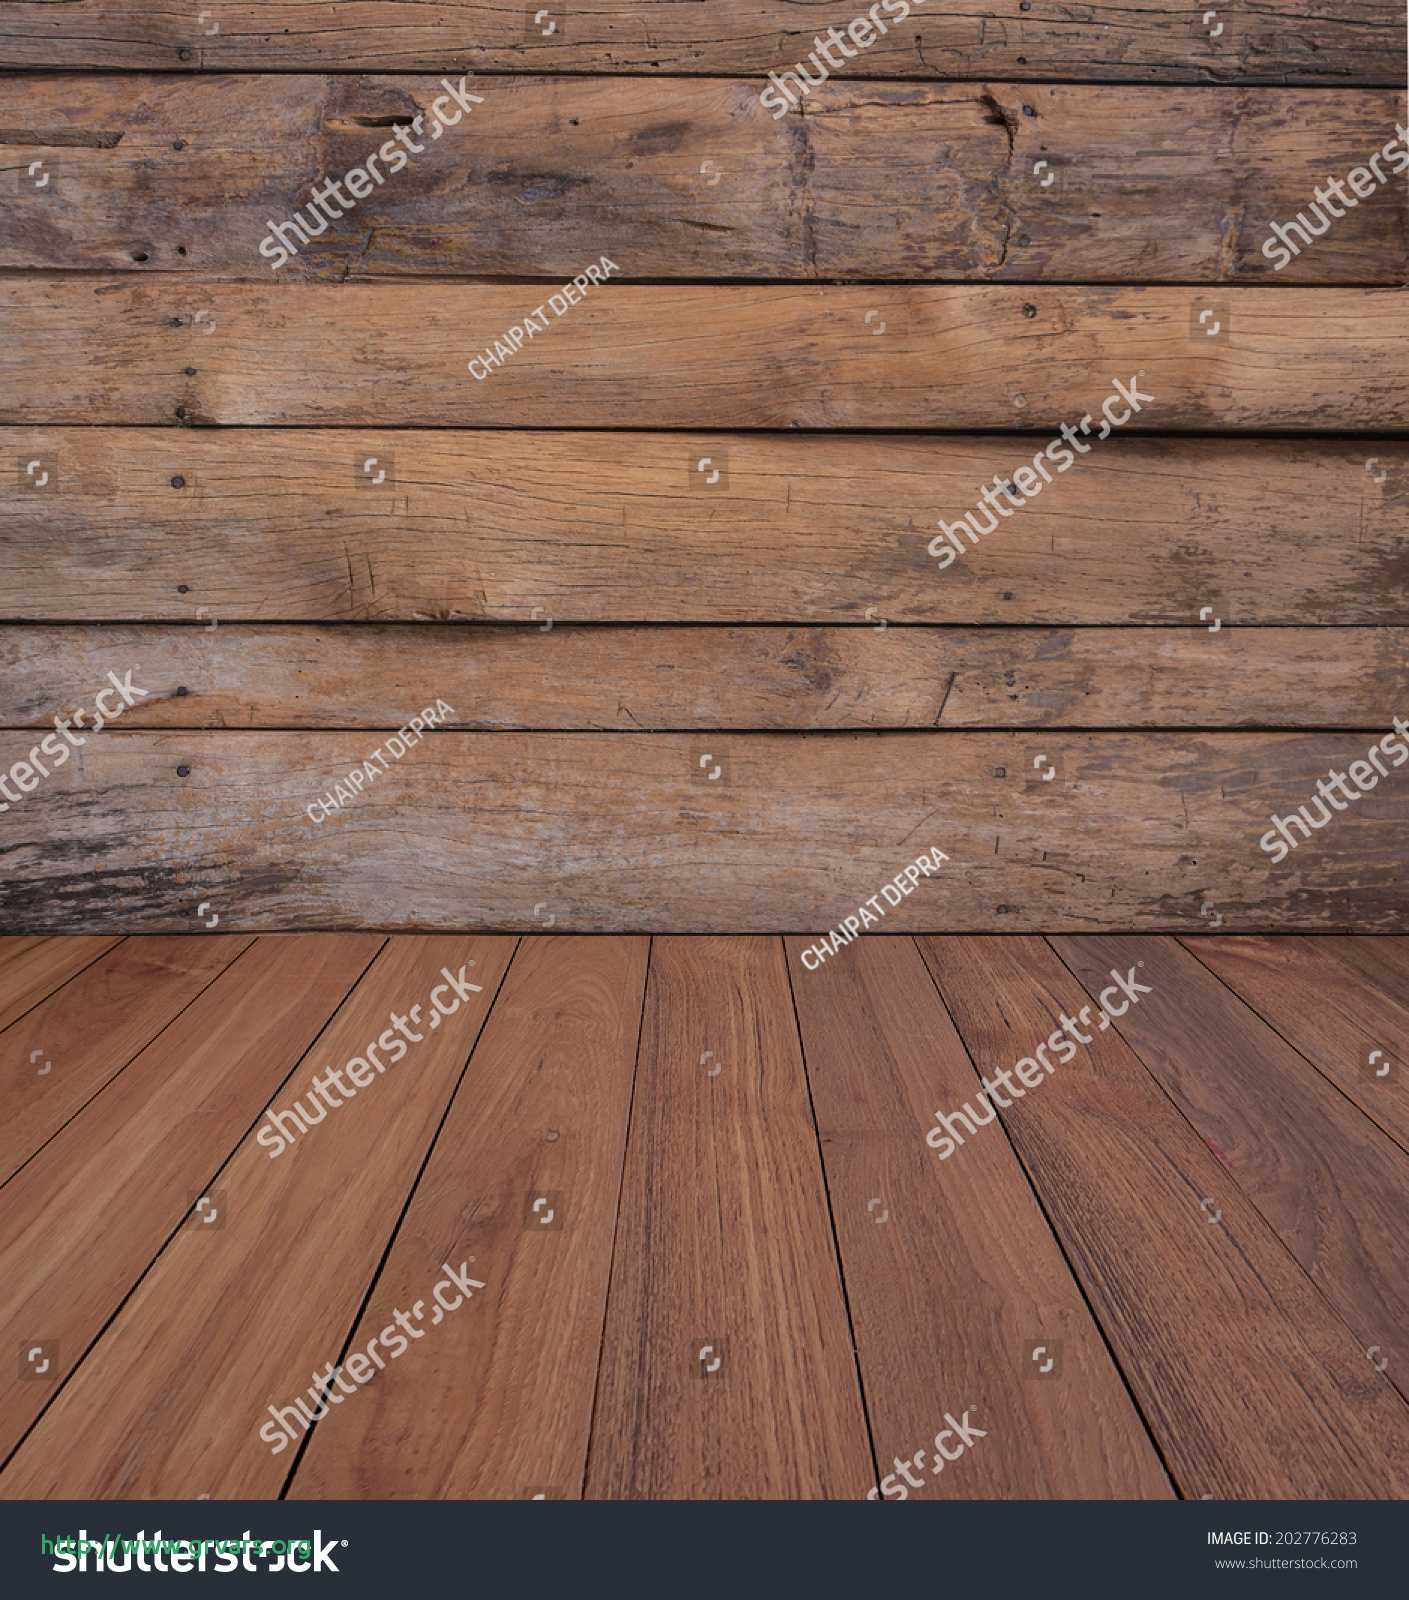 hardwood floor upgrade price of how to lay out wood flooring nouveau hardwood floor design solid in prices how to lay out wood flooring beau od wood wall wood floor stock royalty free